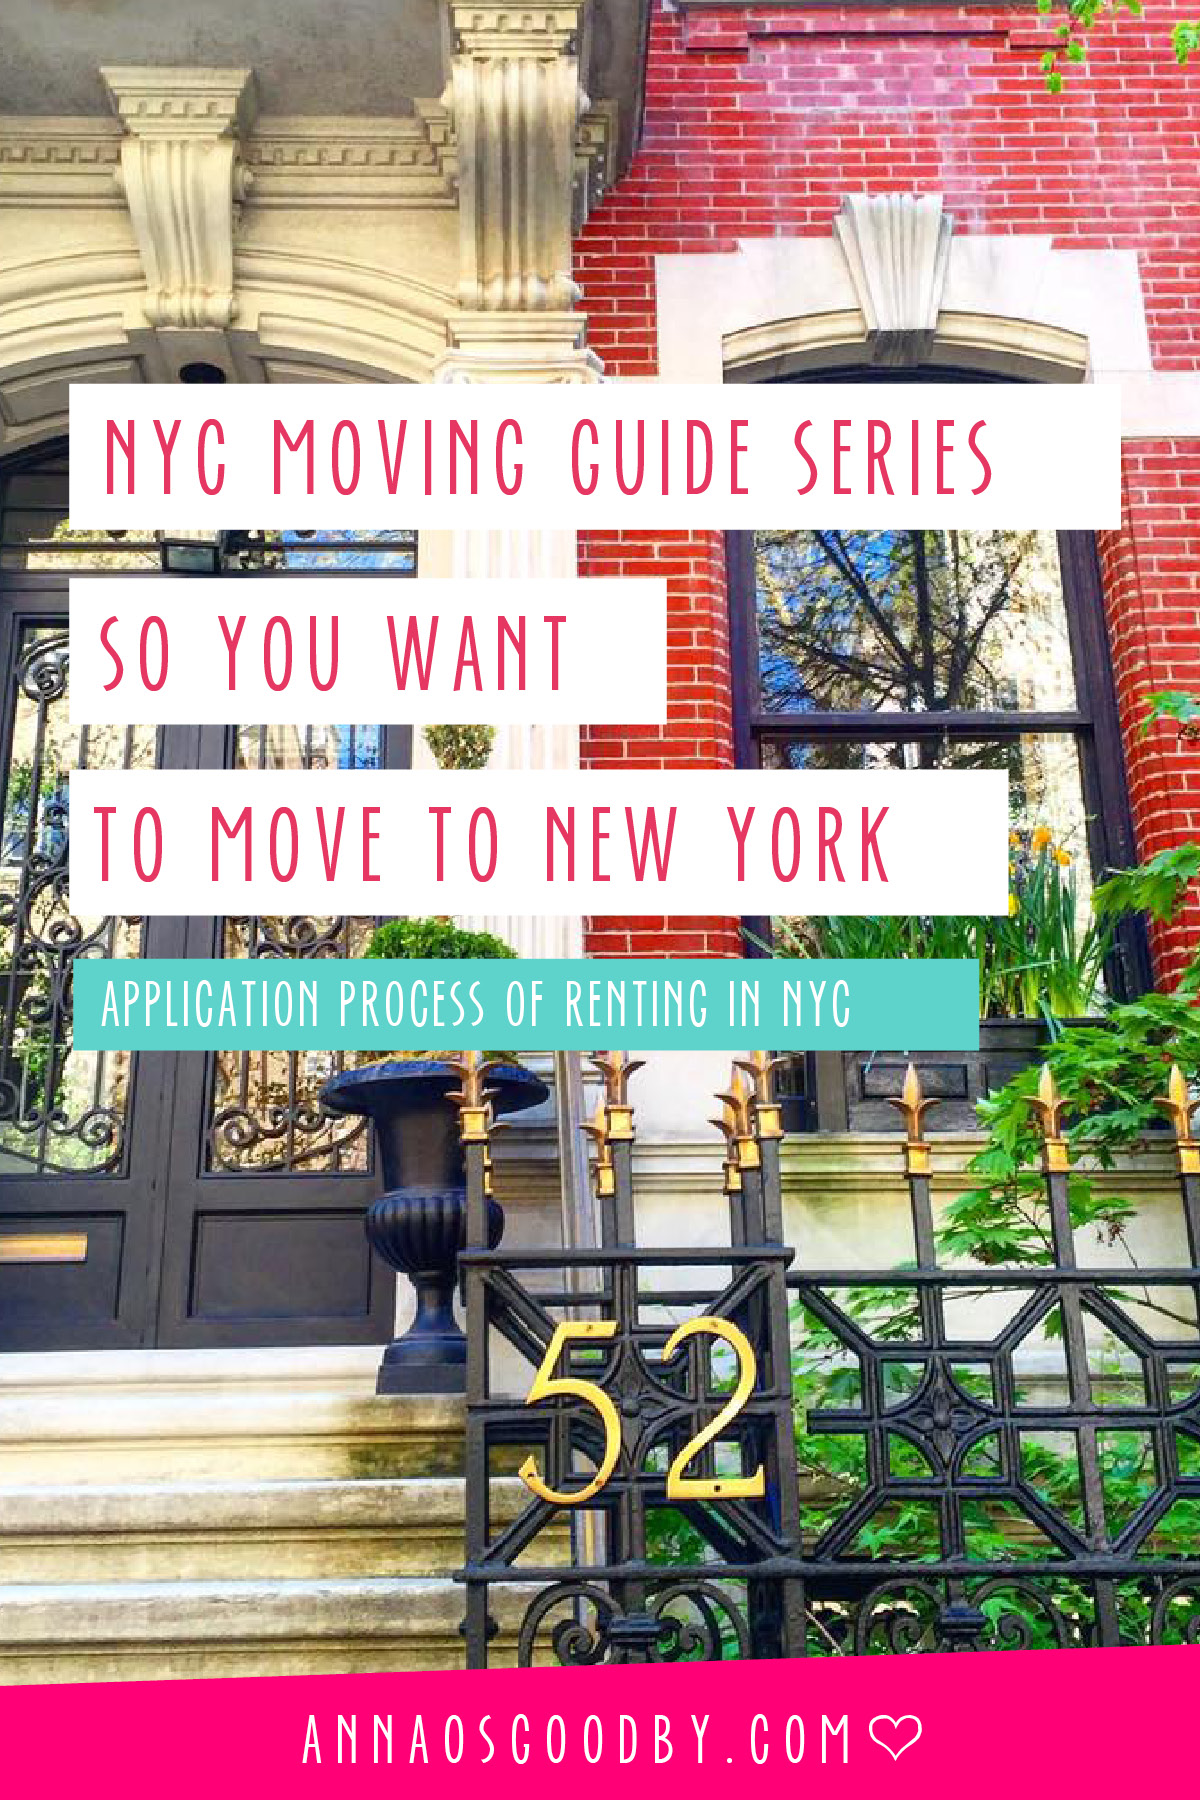 Anna Osgoodby Life + Design :: So You Want to Move to NYC :: Moving to New York City Guide Sealing the Deal and Application Process